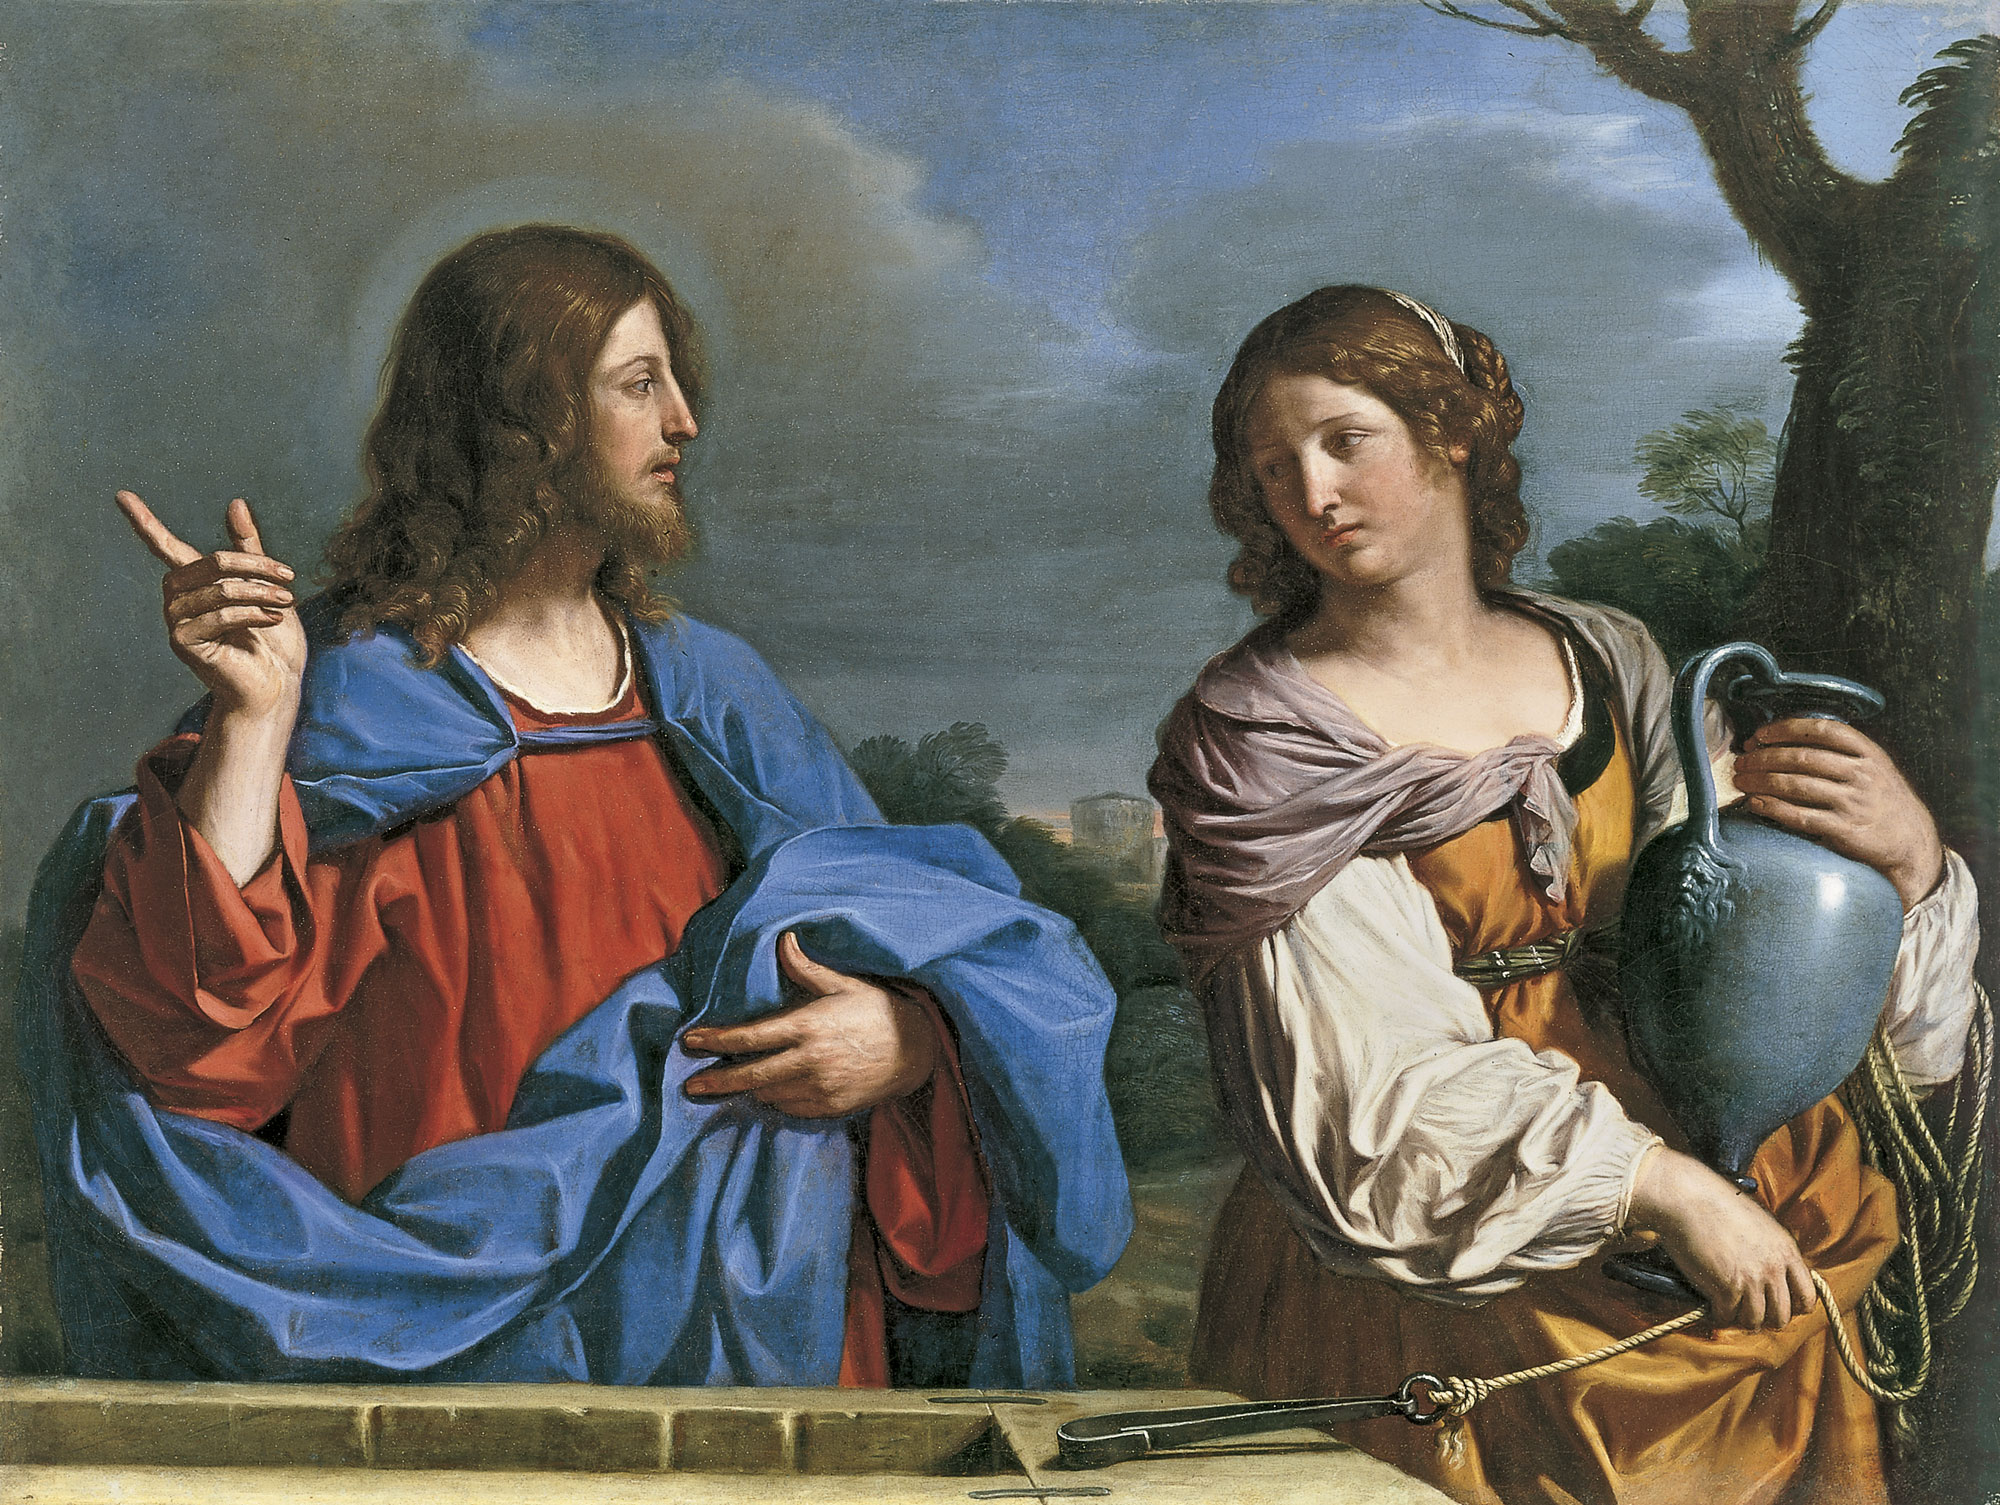 https://upload.wikimedia.org/wikipedia/commons/8/89/Guercino_Christ_et_la_samaritaine.jpg